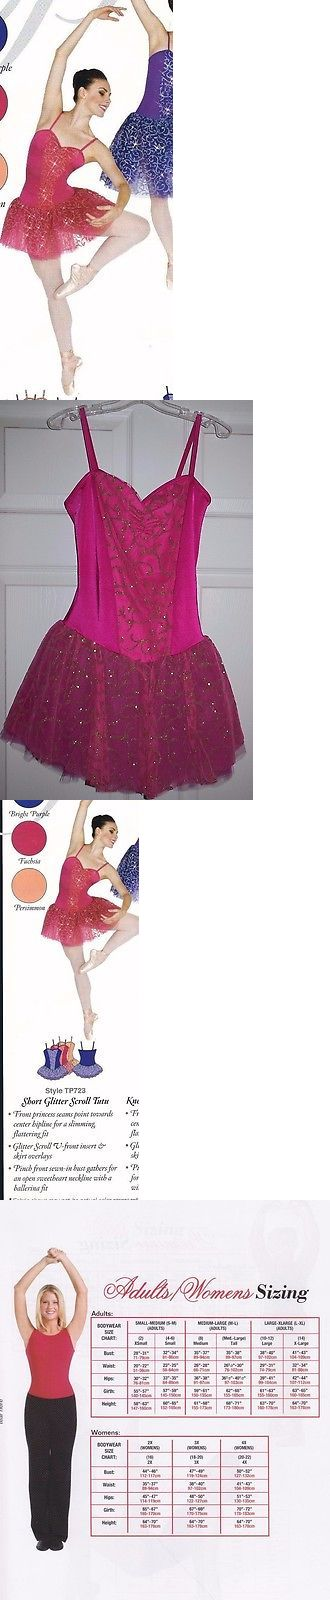 Other Adult Dancewear 112428: Nwot Body Wrappers Dance Ballet Glitter Short Tutu Fuchsia Cami Leotard Adult M -> BUY IT NOW ONLY: $38.39 on eBay!